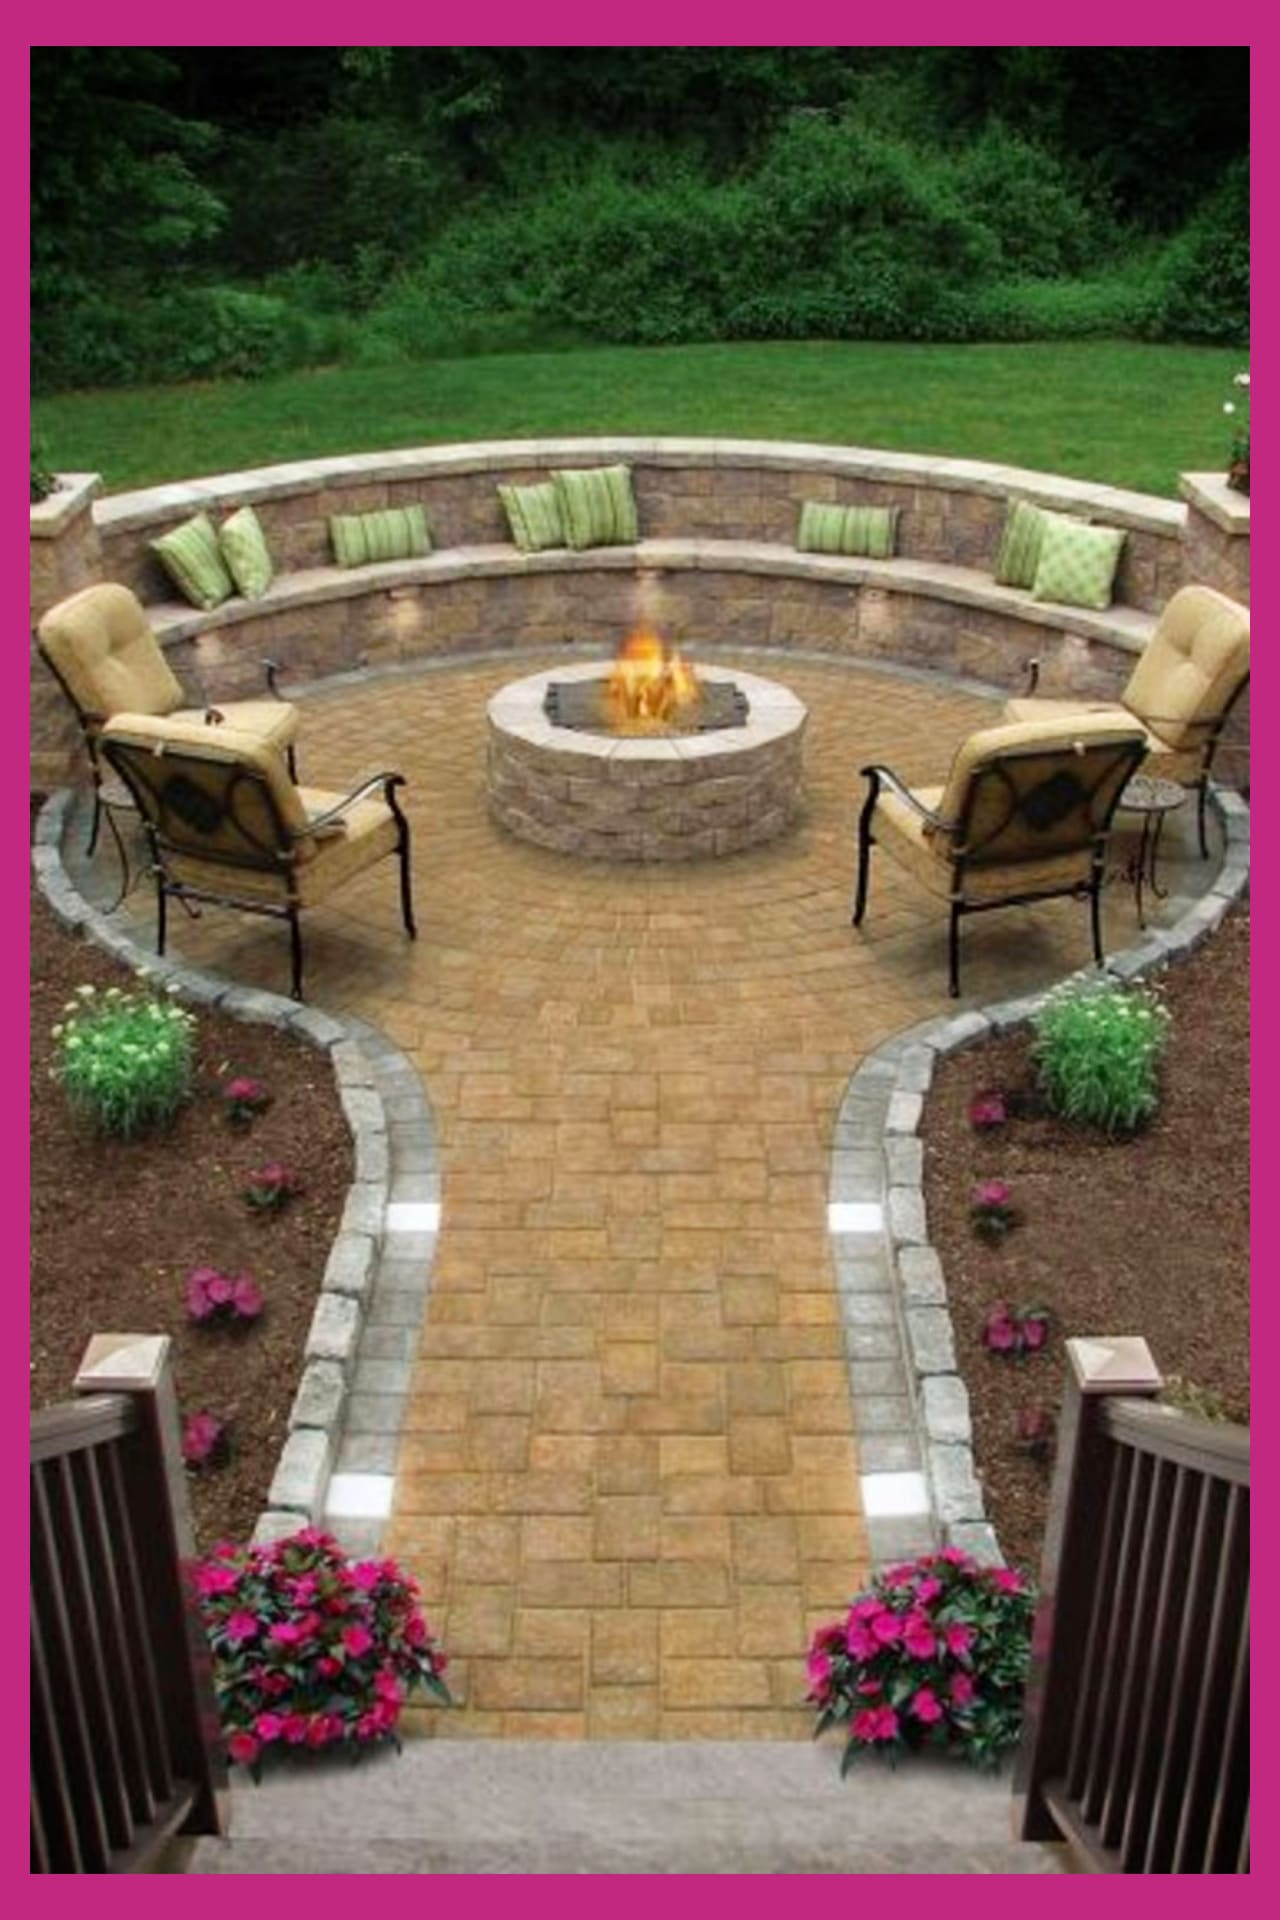 Backyard Fire Pit Ideas and Designs for Your Yard, Deck or ... on Backyard Patio With Firepit id=79772